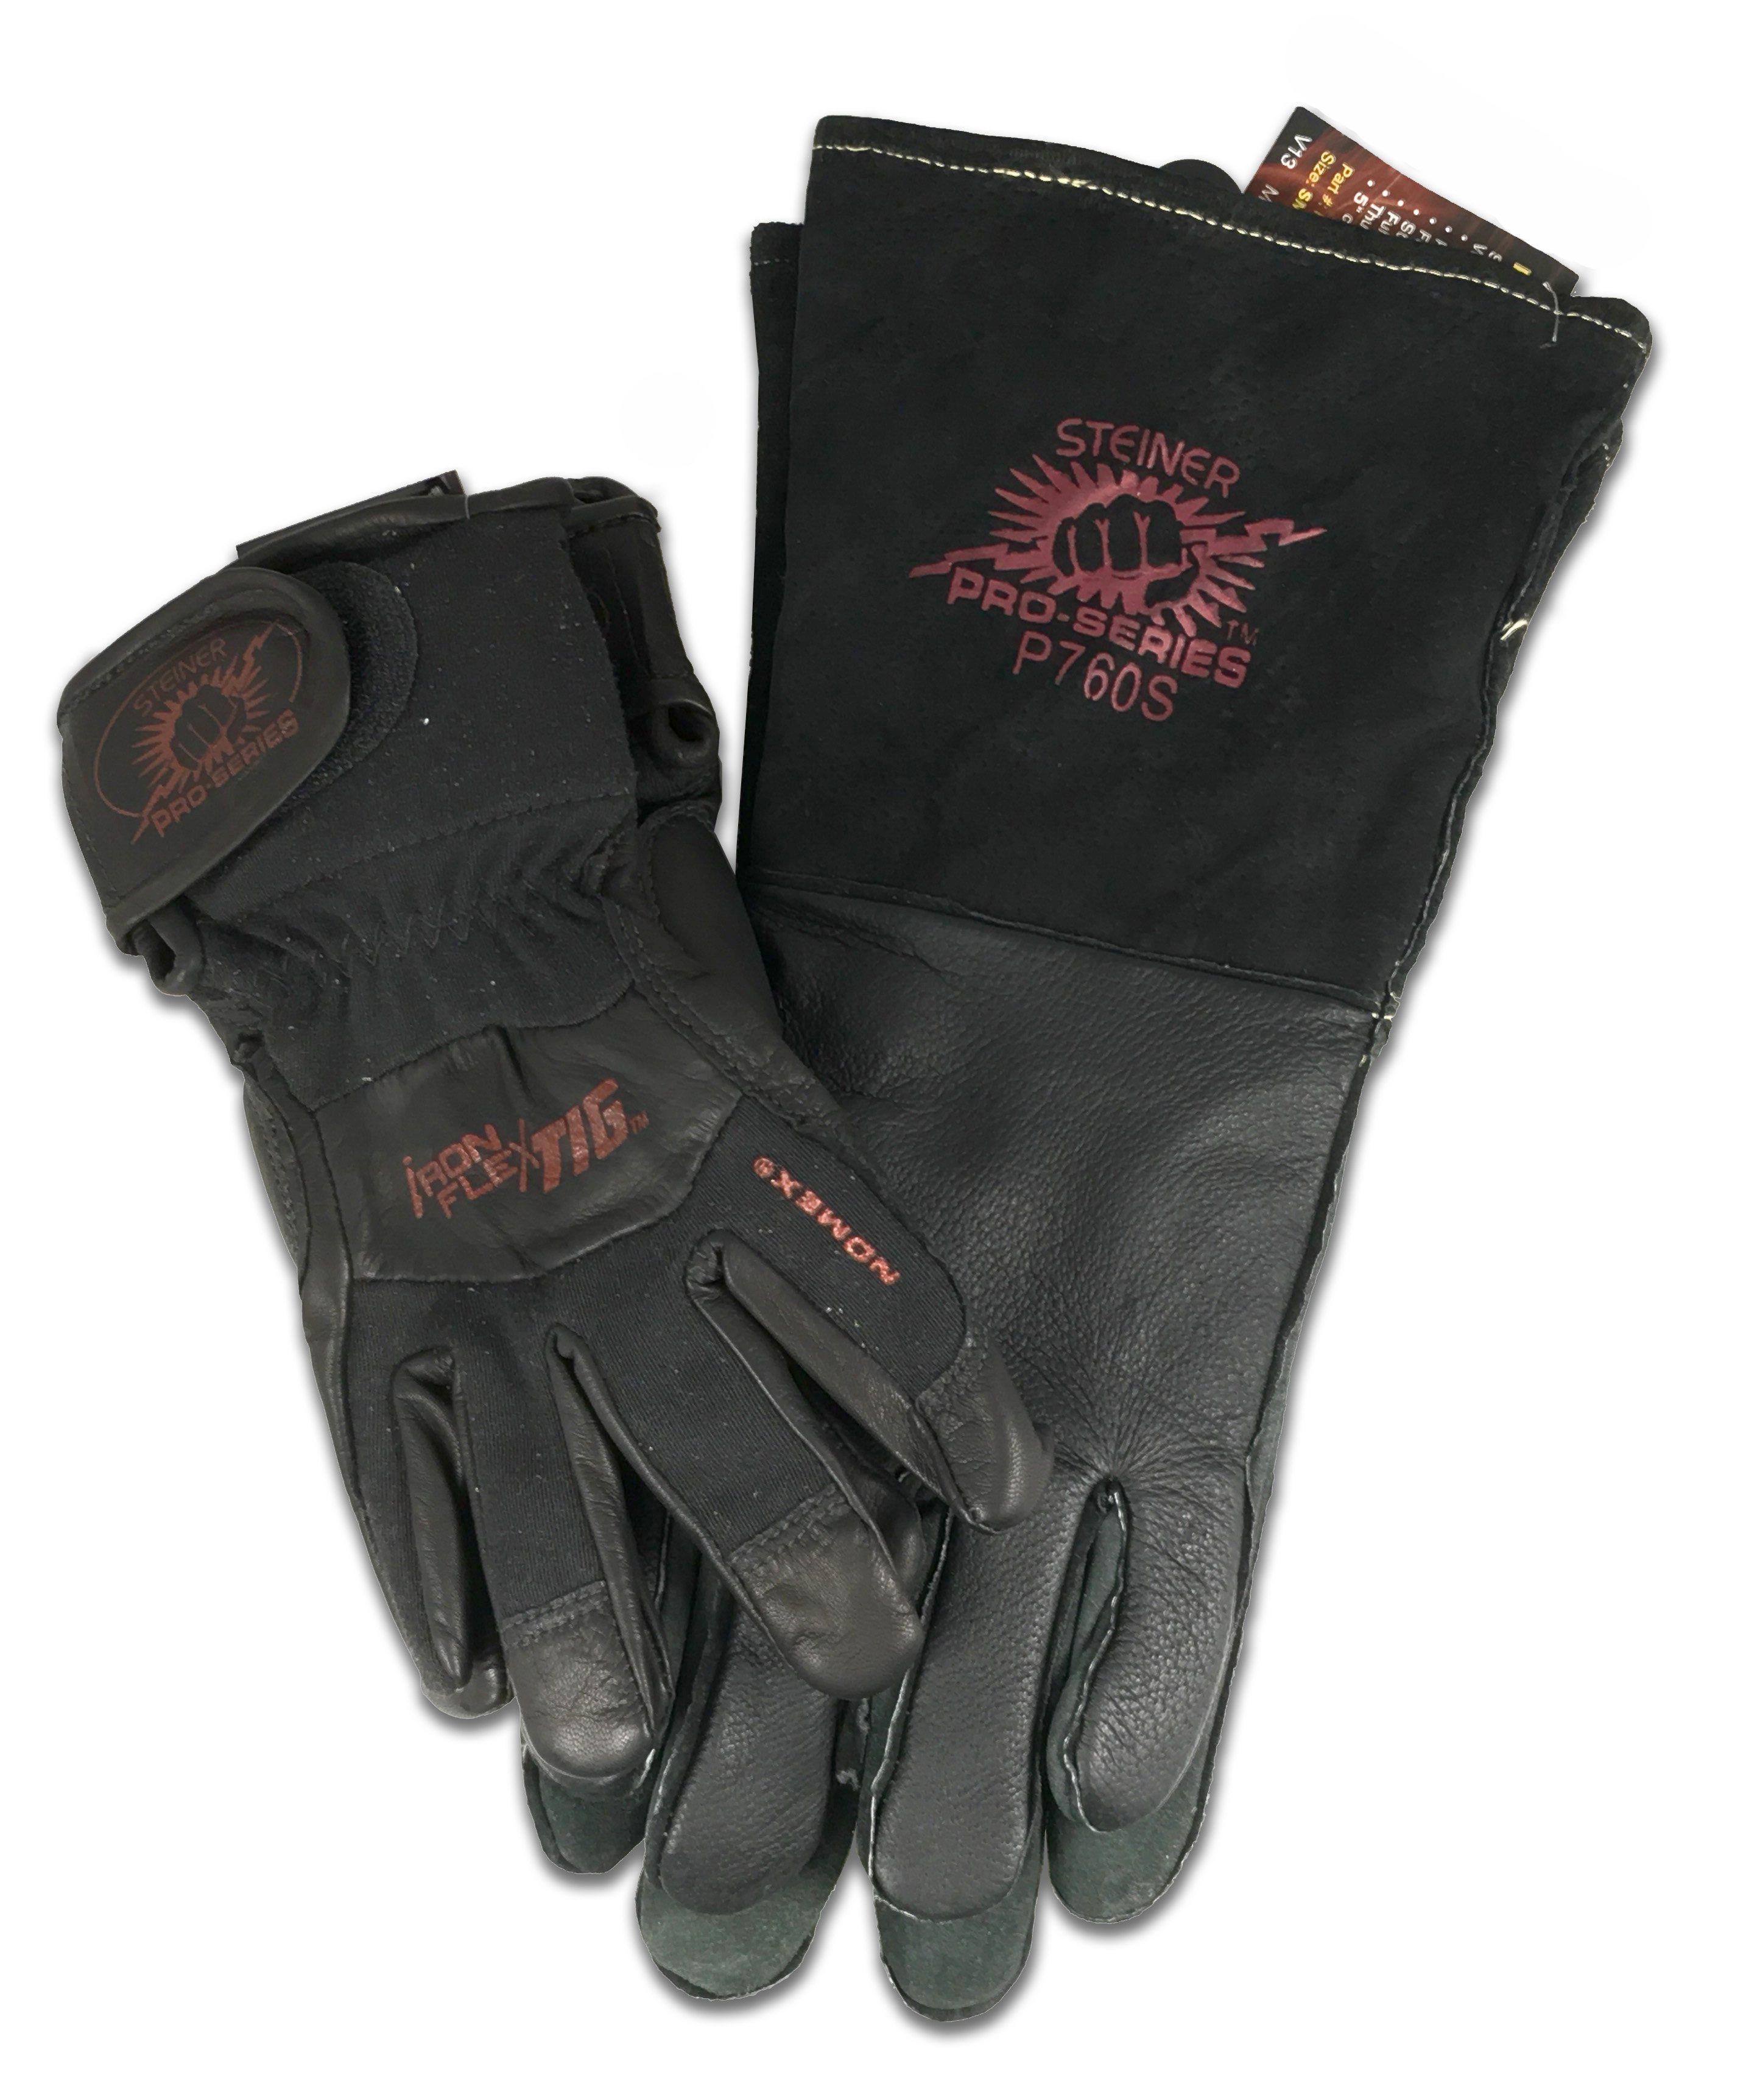 Metal Safety Equipment Goggles Amp Gloves